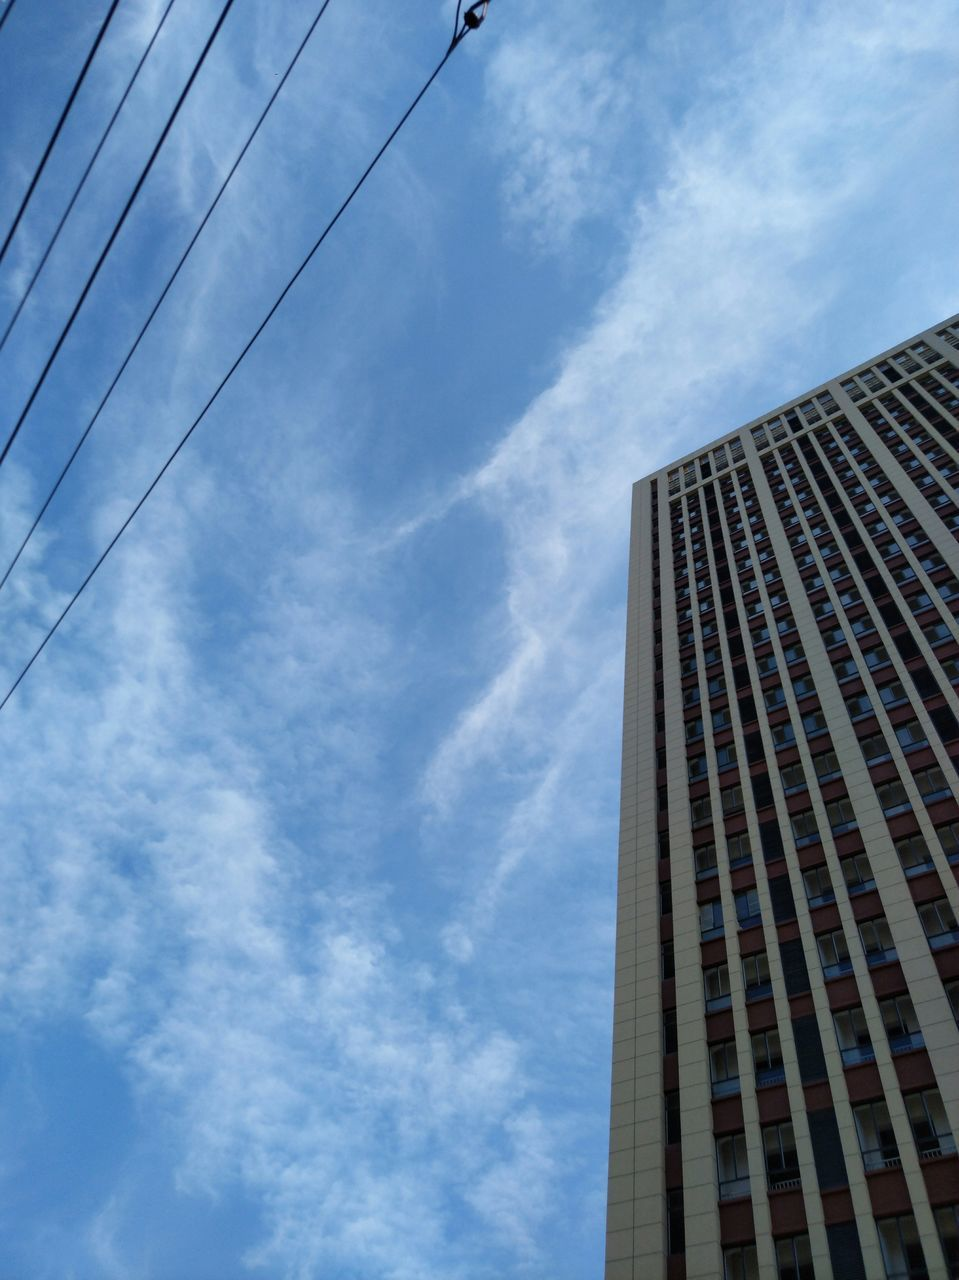 skyscraper, architecture, low angle view, sky, building exterior, built structure, modern, growth, tall, outdoors, day, corporate business, city, no people, blue